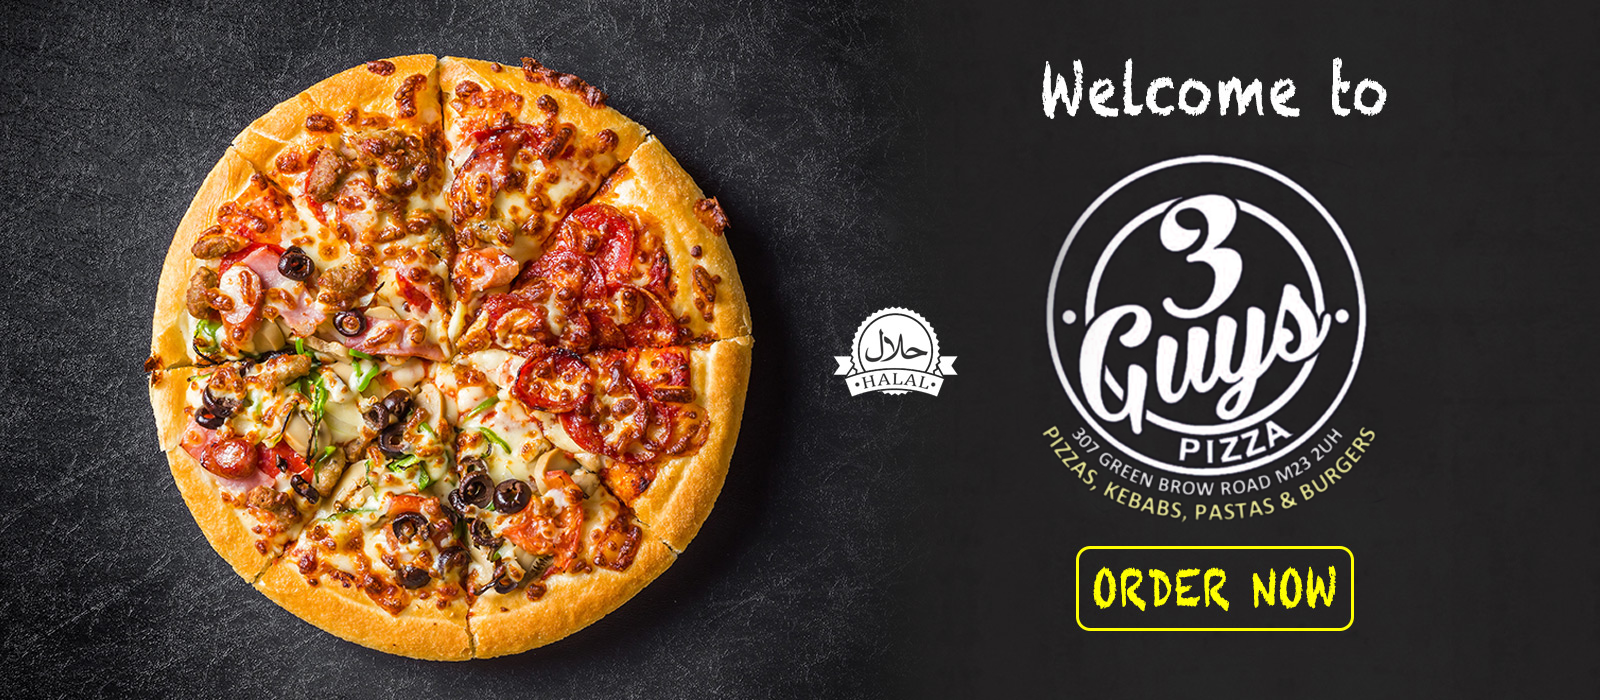 3 Guys Pizza Takeaway Order Online Manchester Pizzas